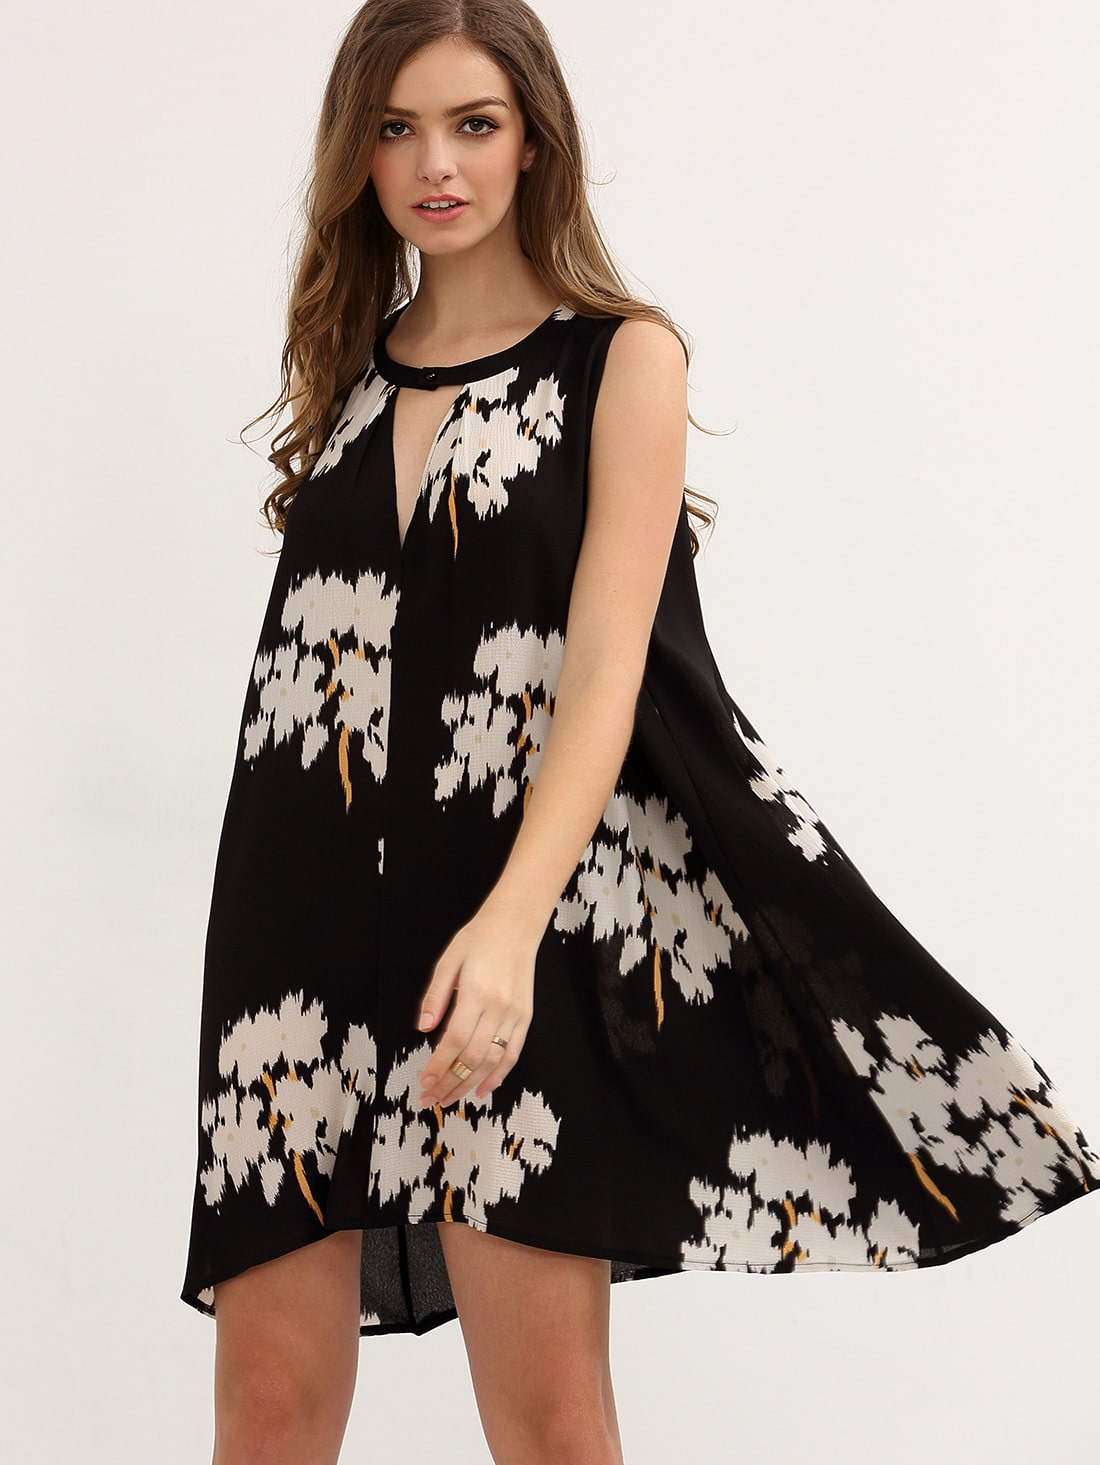 Black Sleeveless Floral Hollow Shift DressBlack Sleeveless Floral Hollow Shift Dress<br><br>color: Black<br>size: L